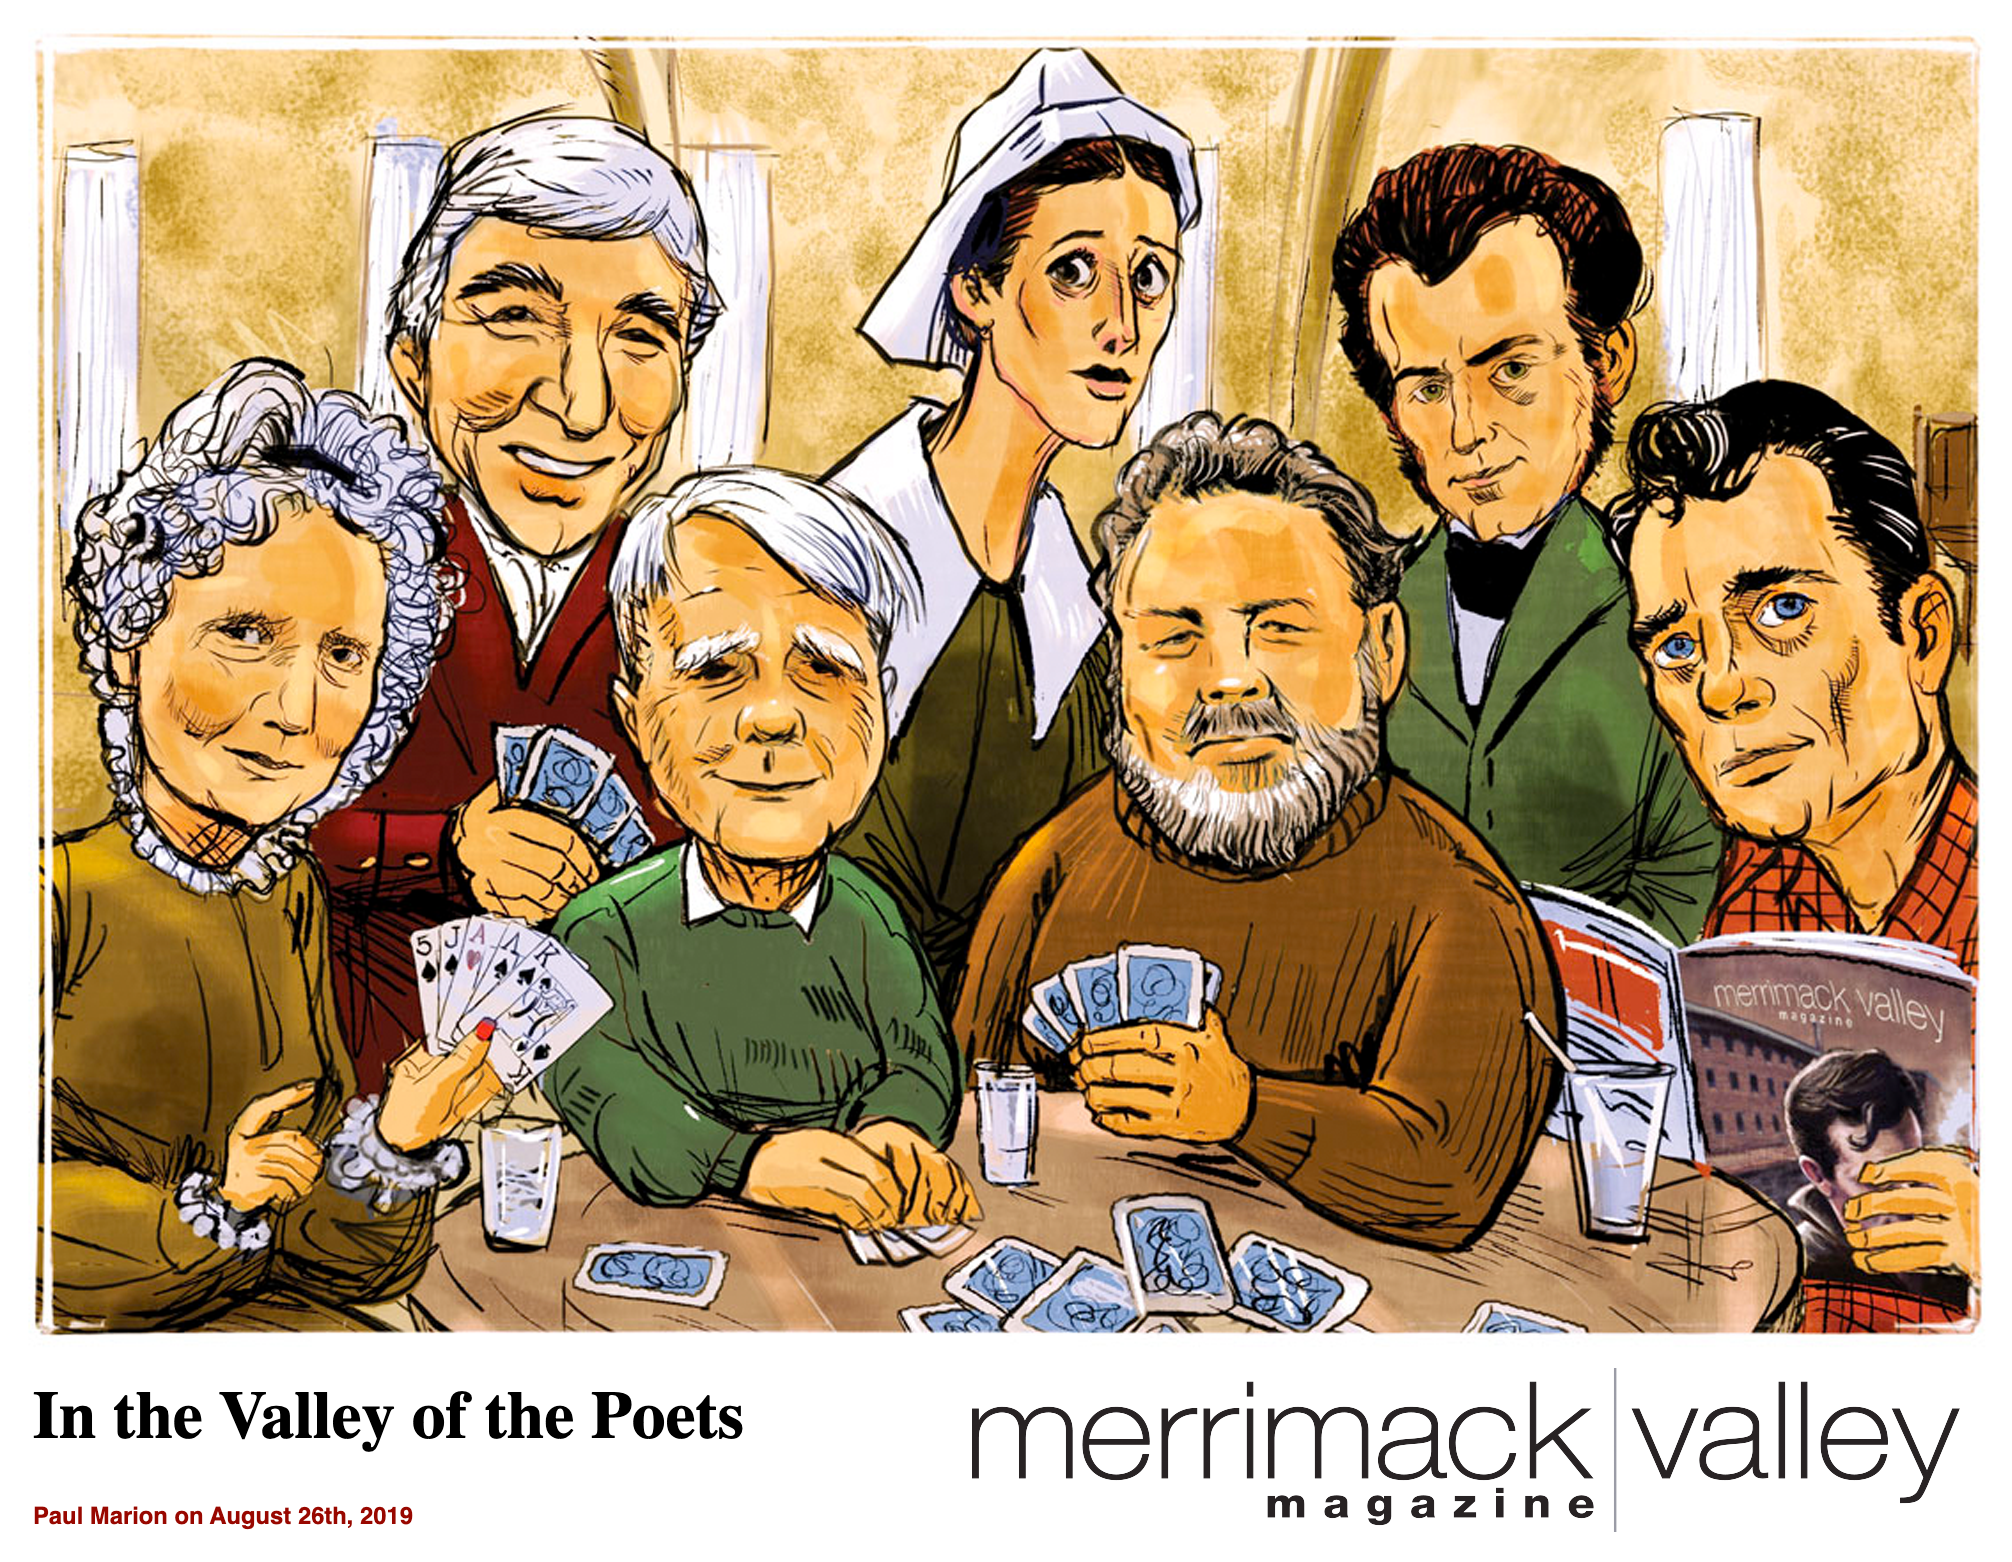 In the Valley of the Poets